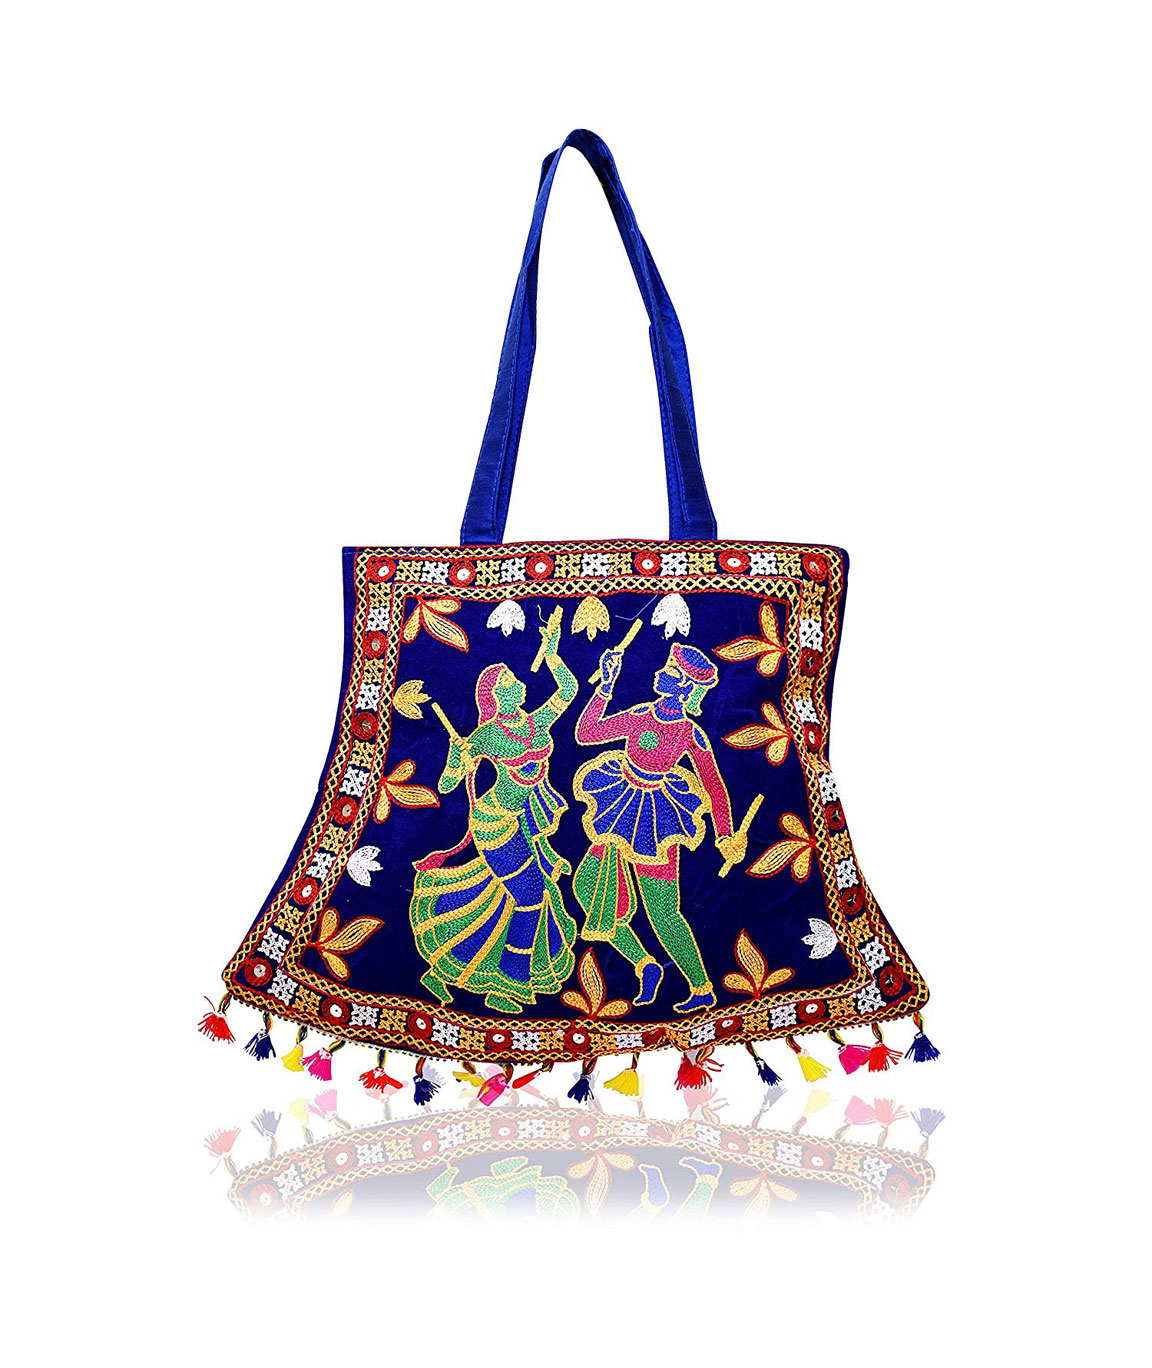 DN Enterprises Designer Embroidered Dark Blue Stylish Shopping Bag ToteBag Thaila Carry Bag(dark blue)